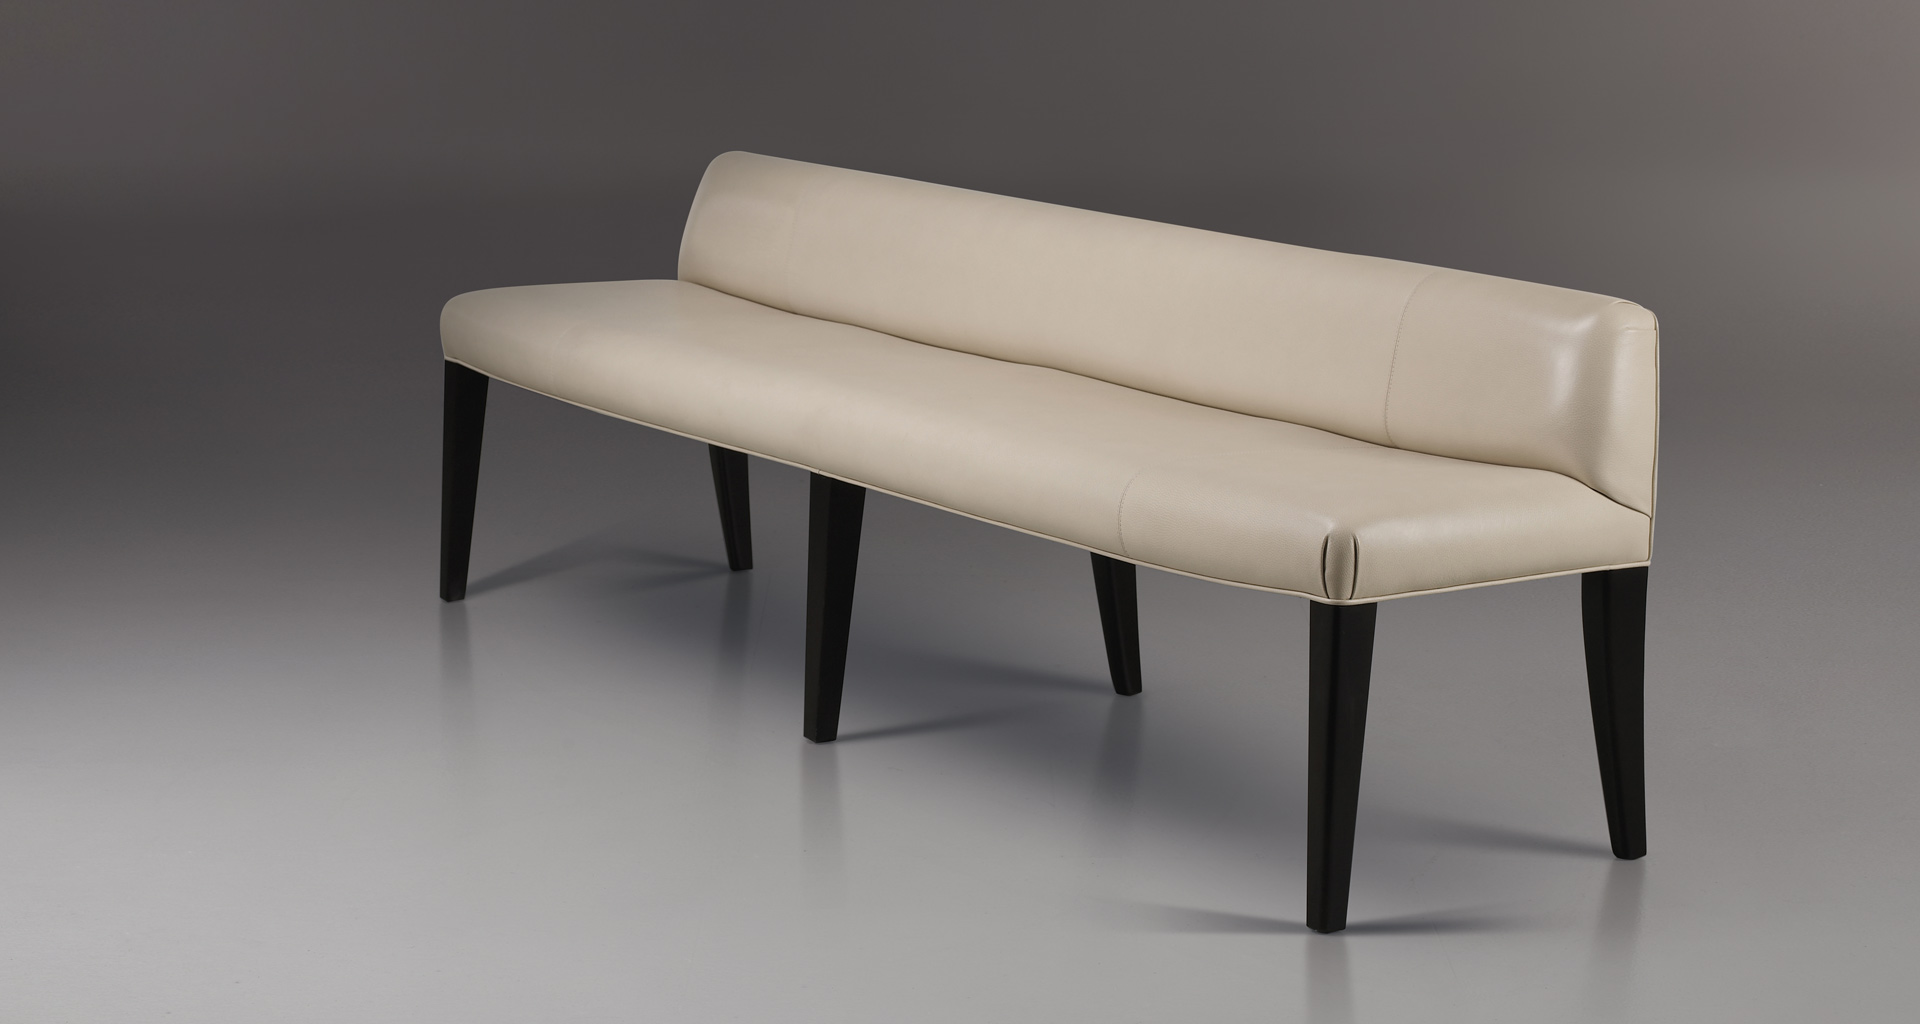 Isotta is a wooden bench with fabric or leather seat and back, from Promemoria's catalogue | Promemoria